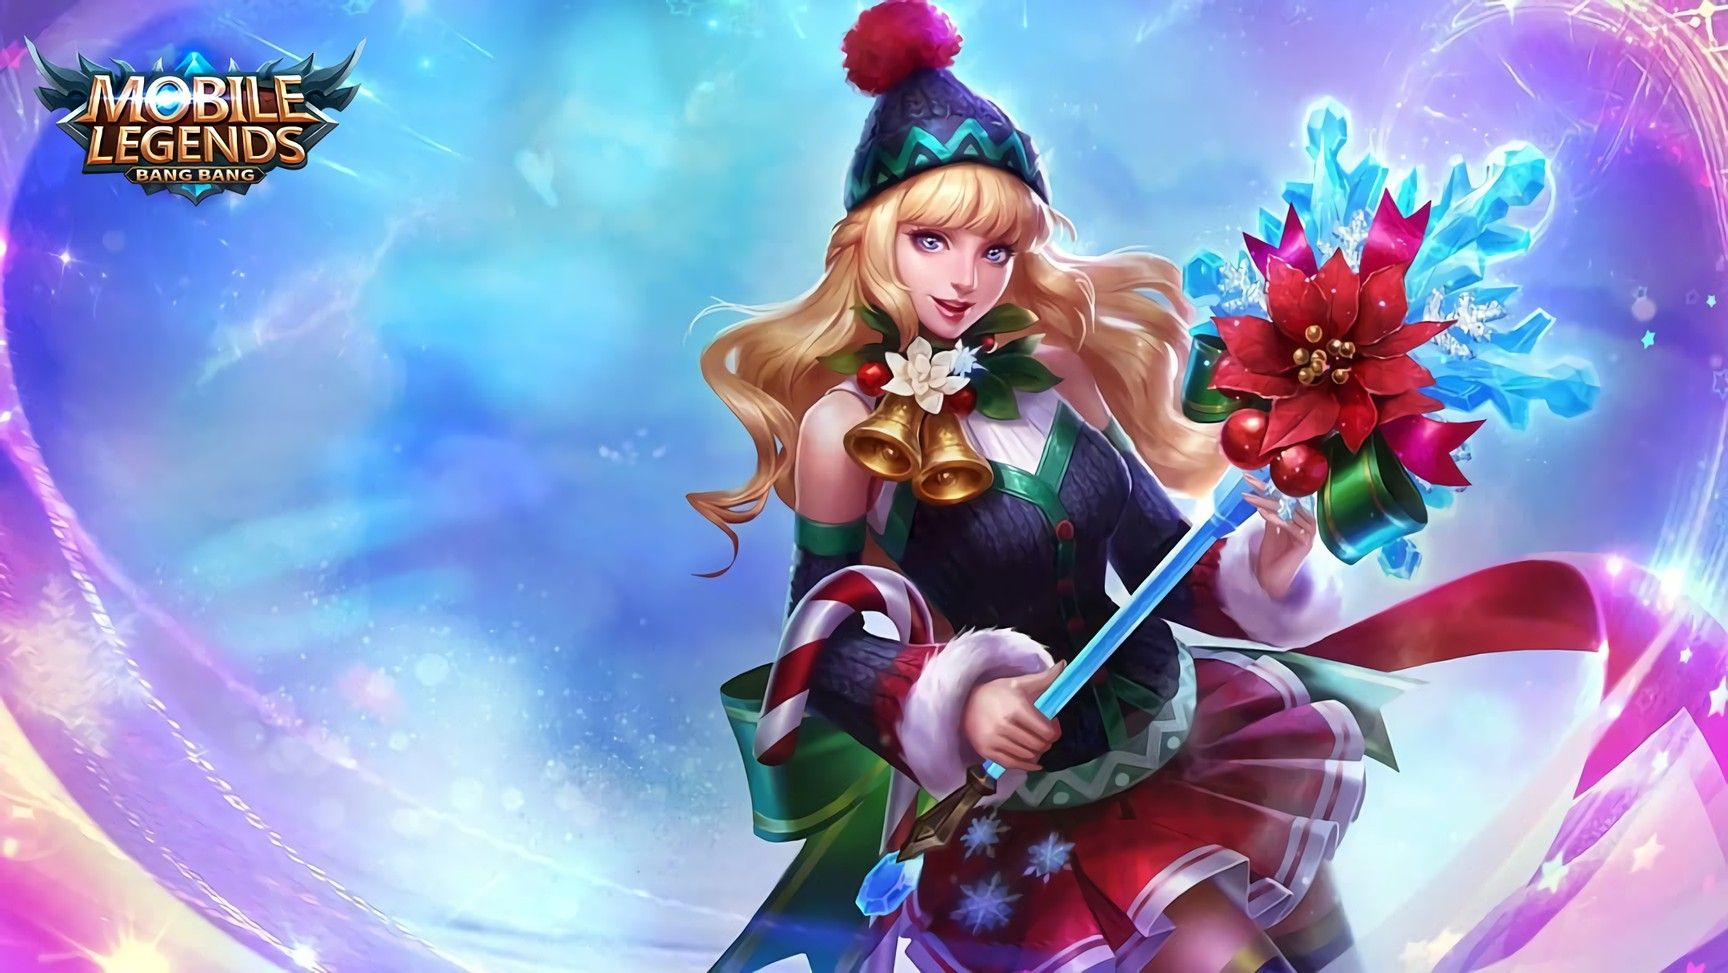 Pin By Kagura Zuniga On Awesome Mobile Legends Mobile Legend